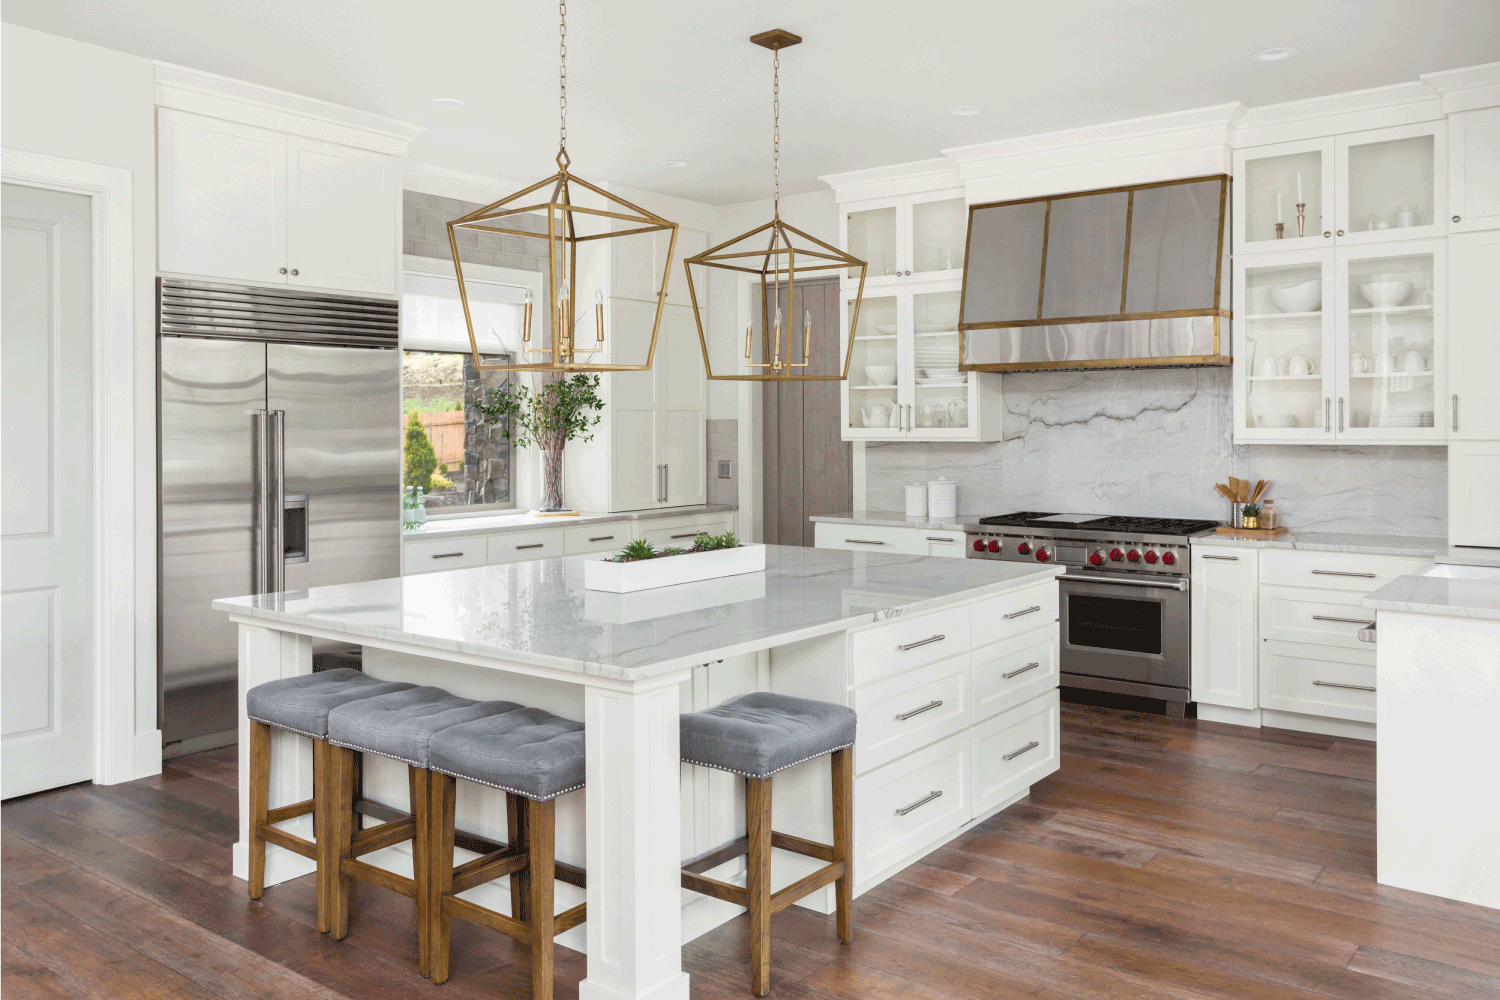 Beautiful kitchen in new luxury home with island, pendant lights, and hardwood floors. Should Kitchen Floor Match Worktop Or Cabinets